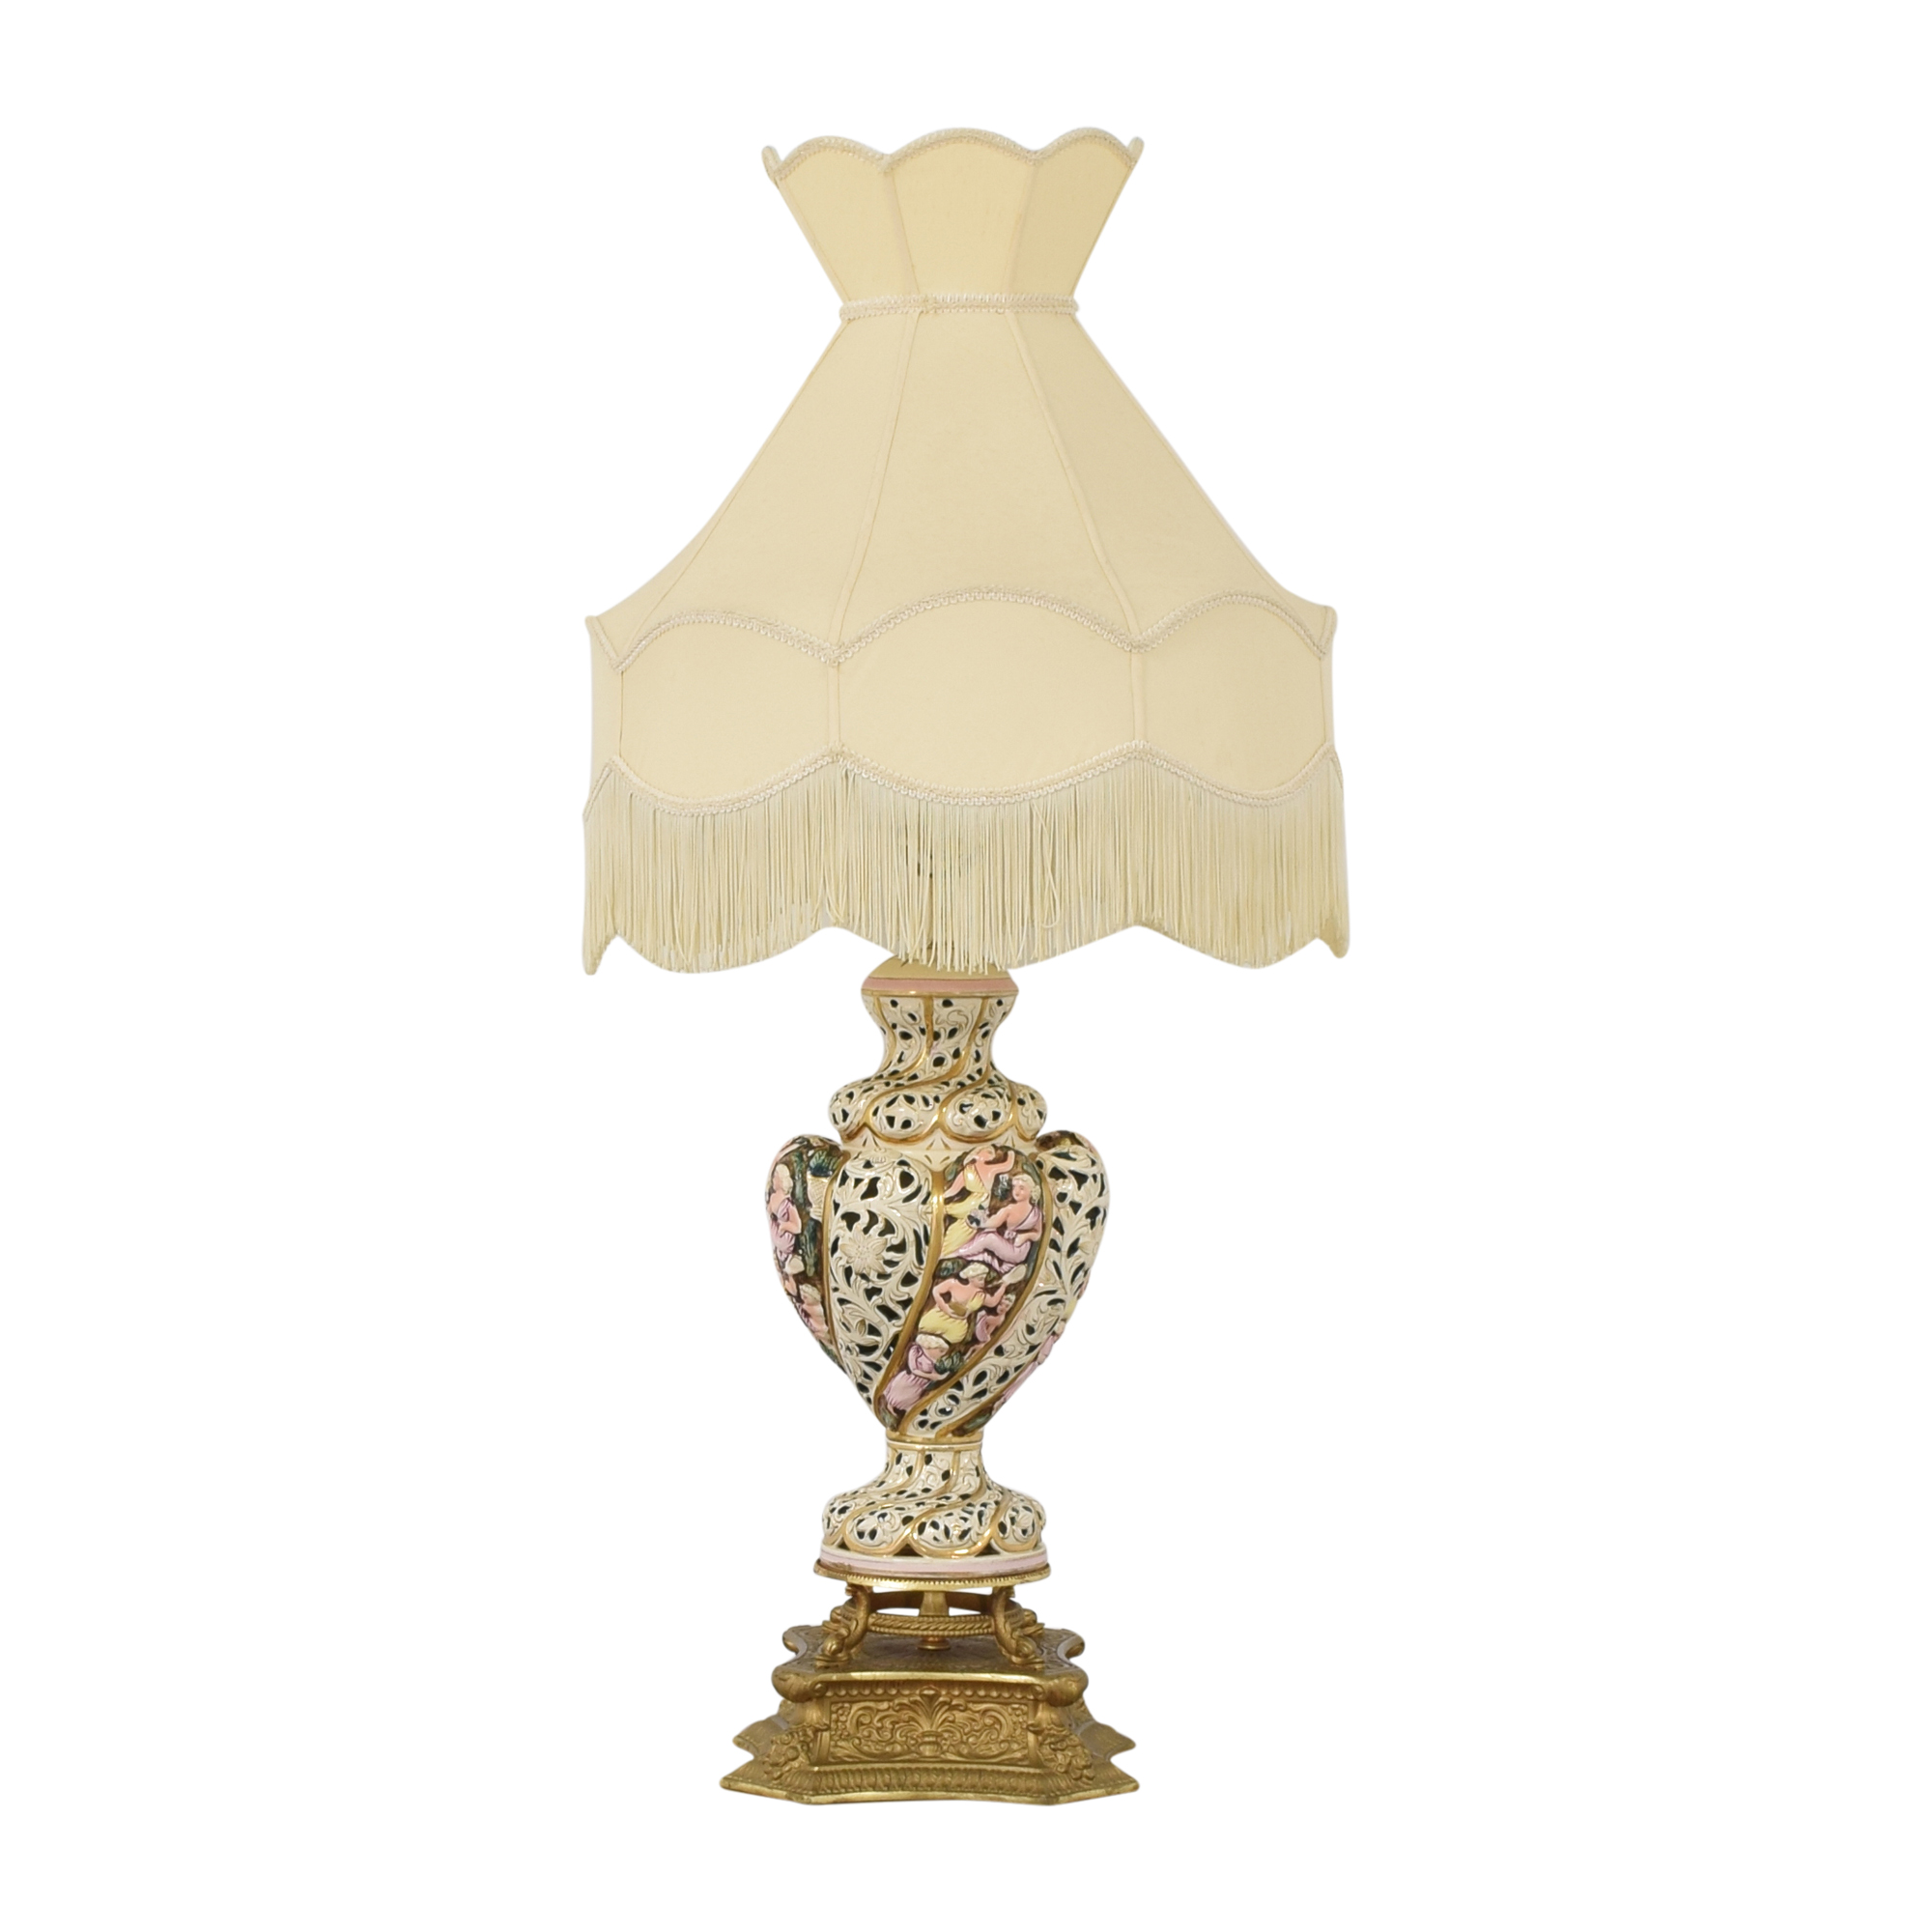 Vintage-Style Table Lamp Lamps